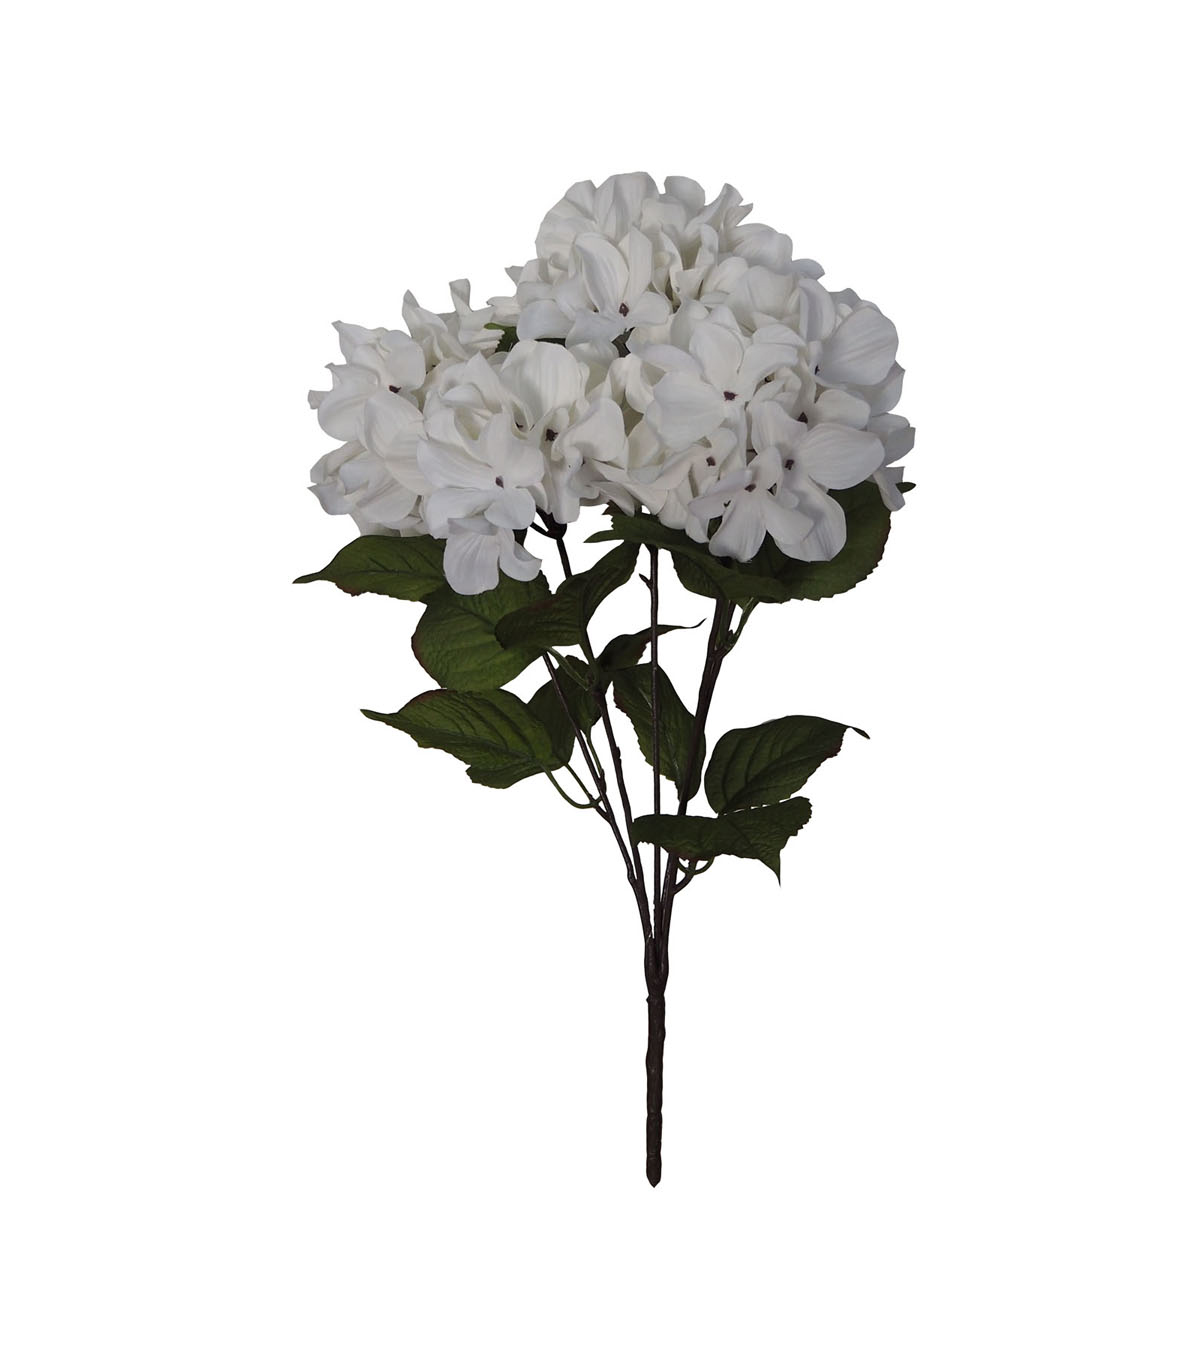 Blooming Autumn Hydrangea Bush-White